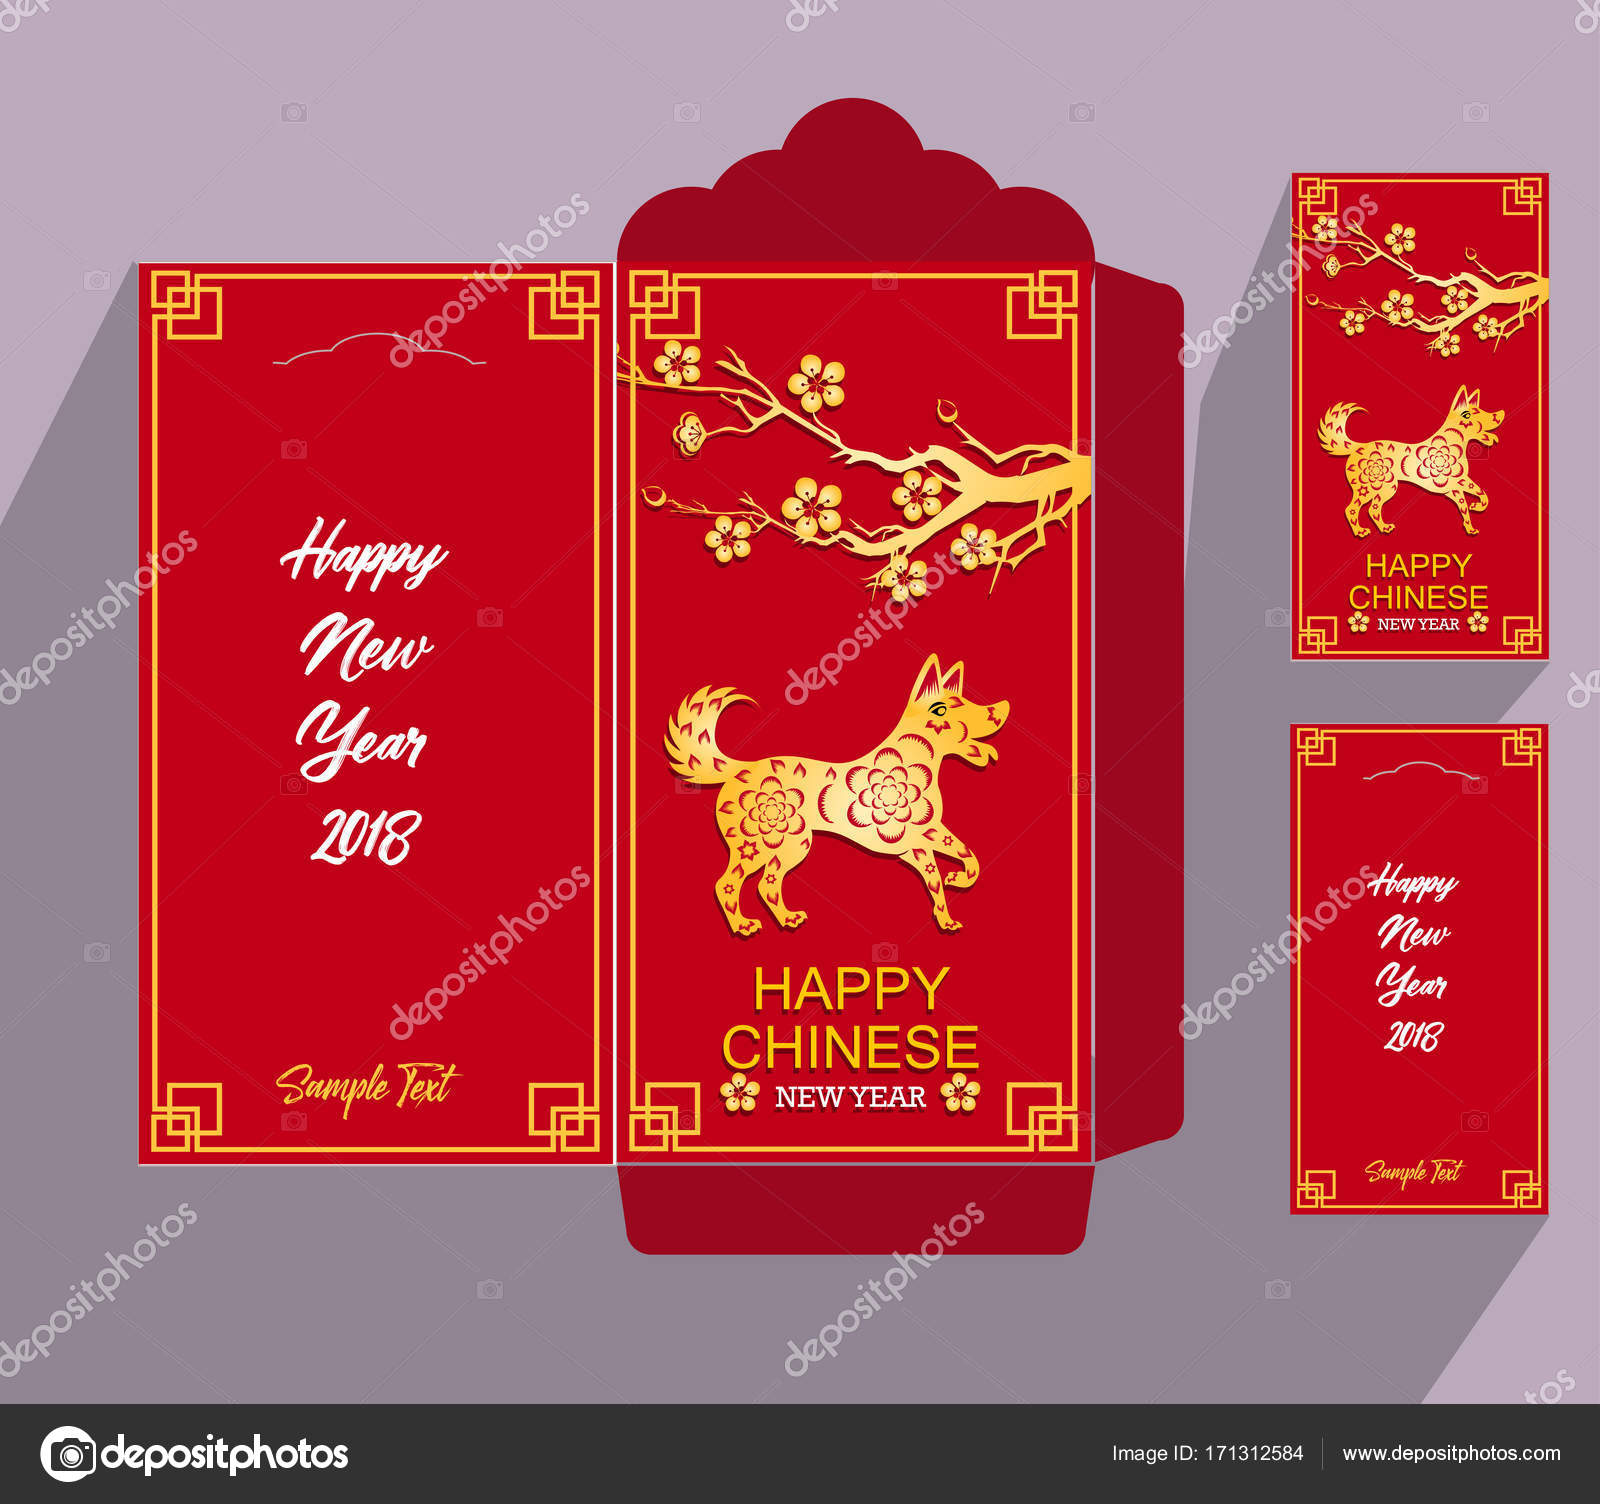 chinese new year red envelope flat icon year of the dog 2018 stock vector - Chinese New Year Red Envelope